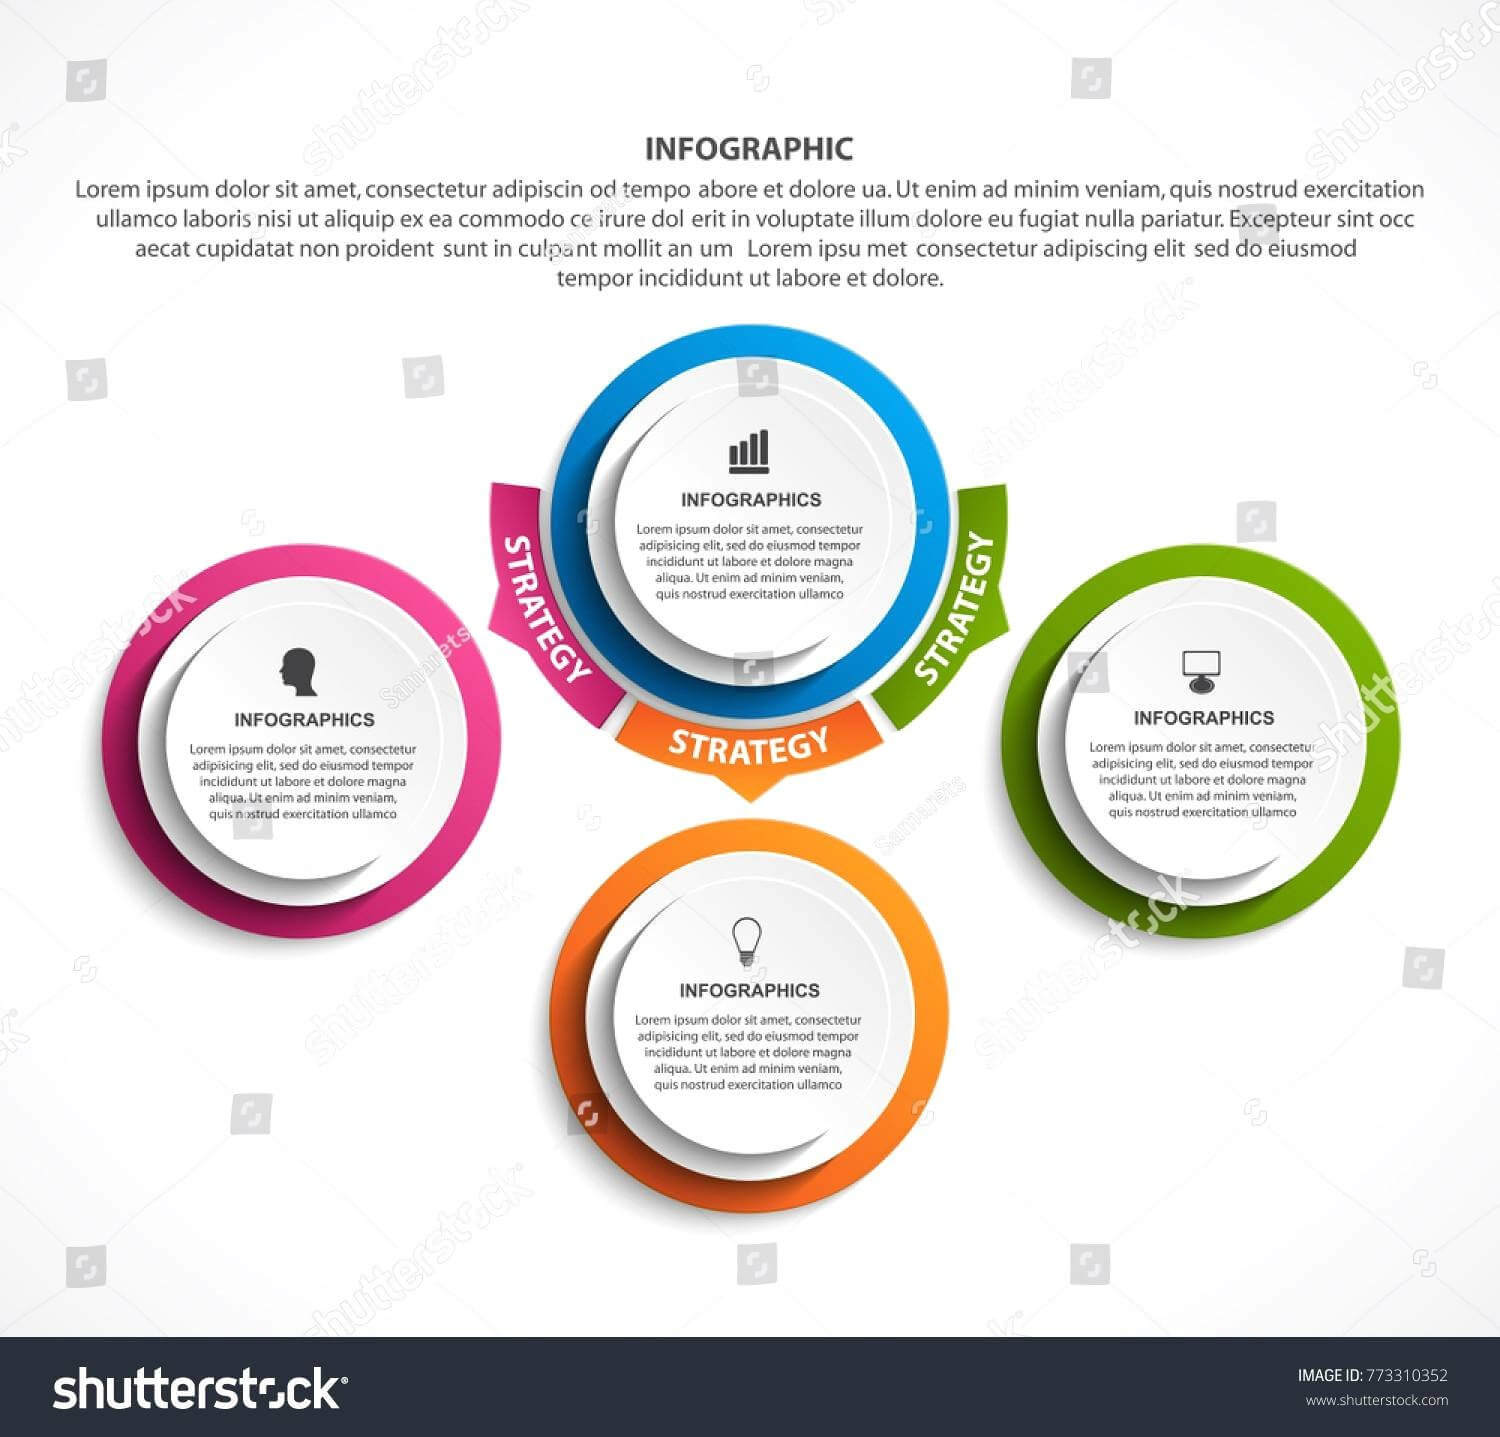 Rugby Infographic – How To Create Certificate Template within Rugby League Certificate Templates